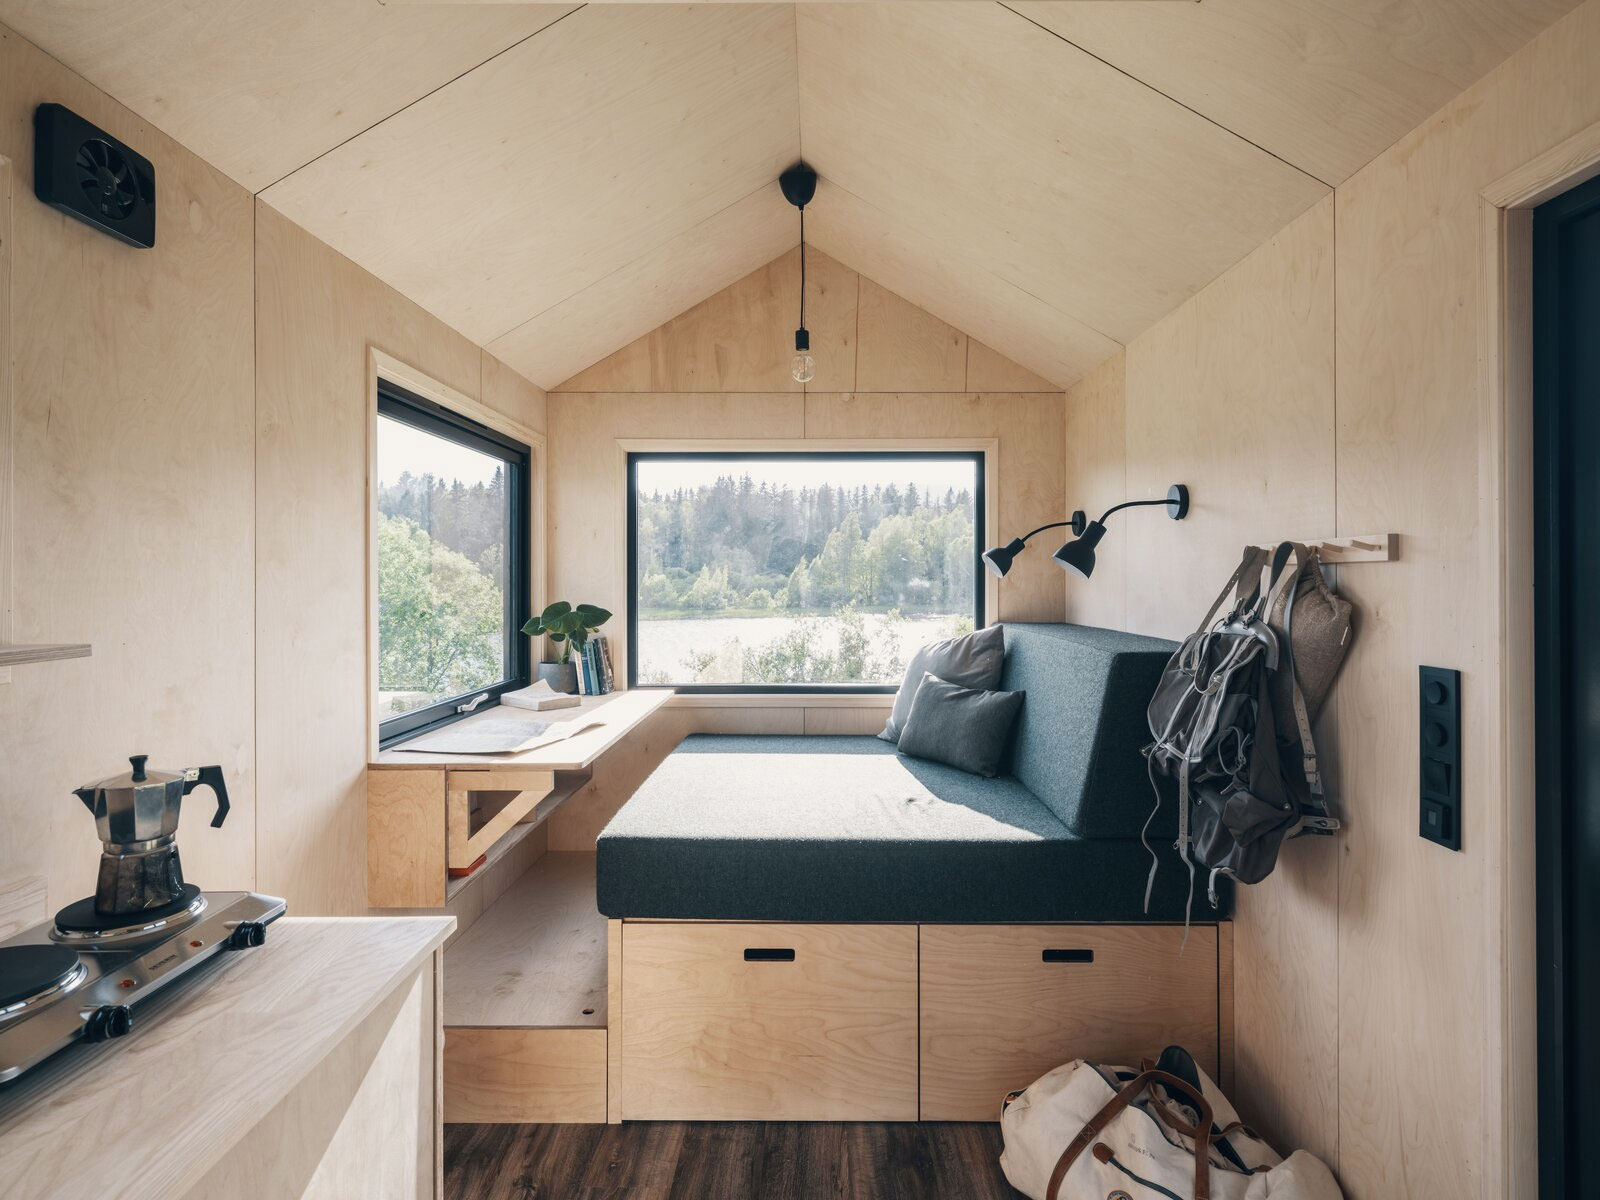 Norske Mikrohus channels Nordic minimalism into tiny home form